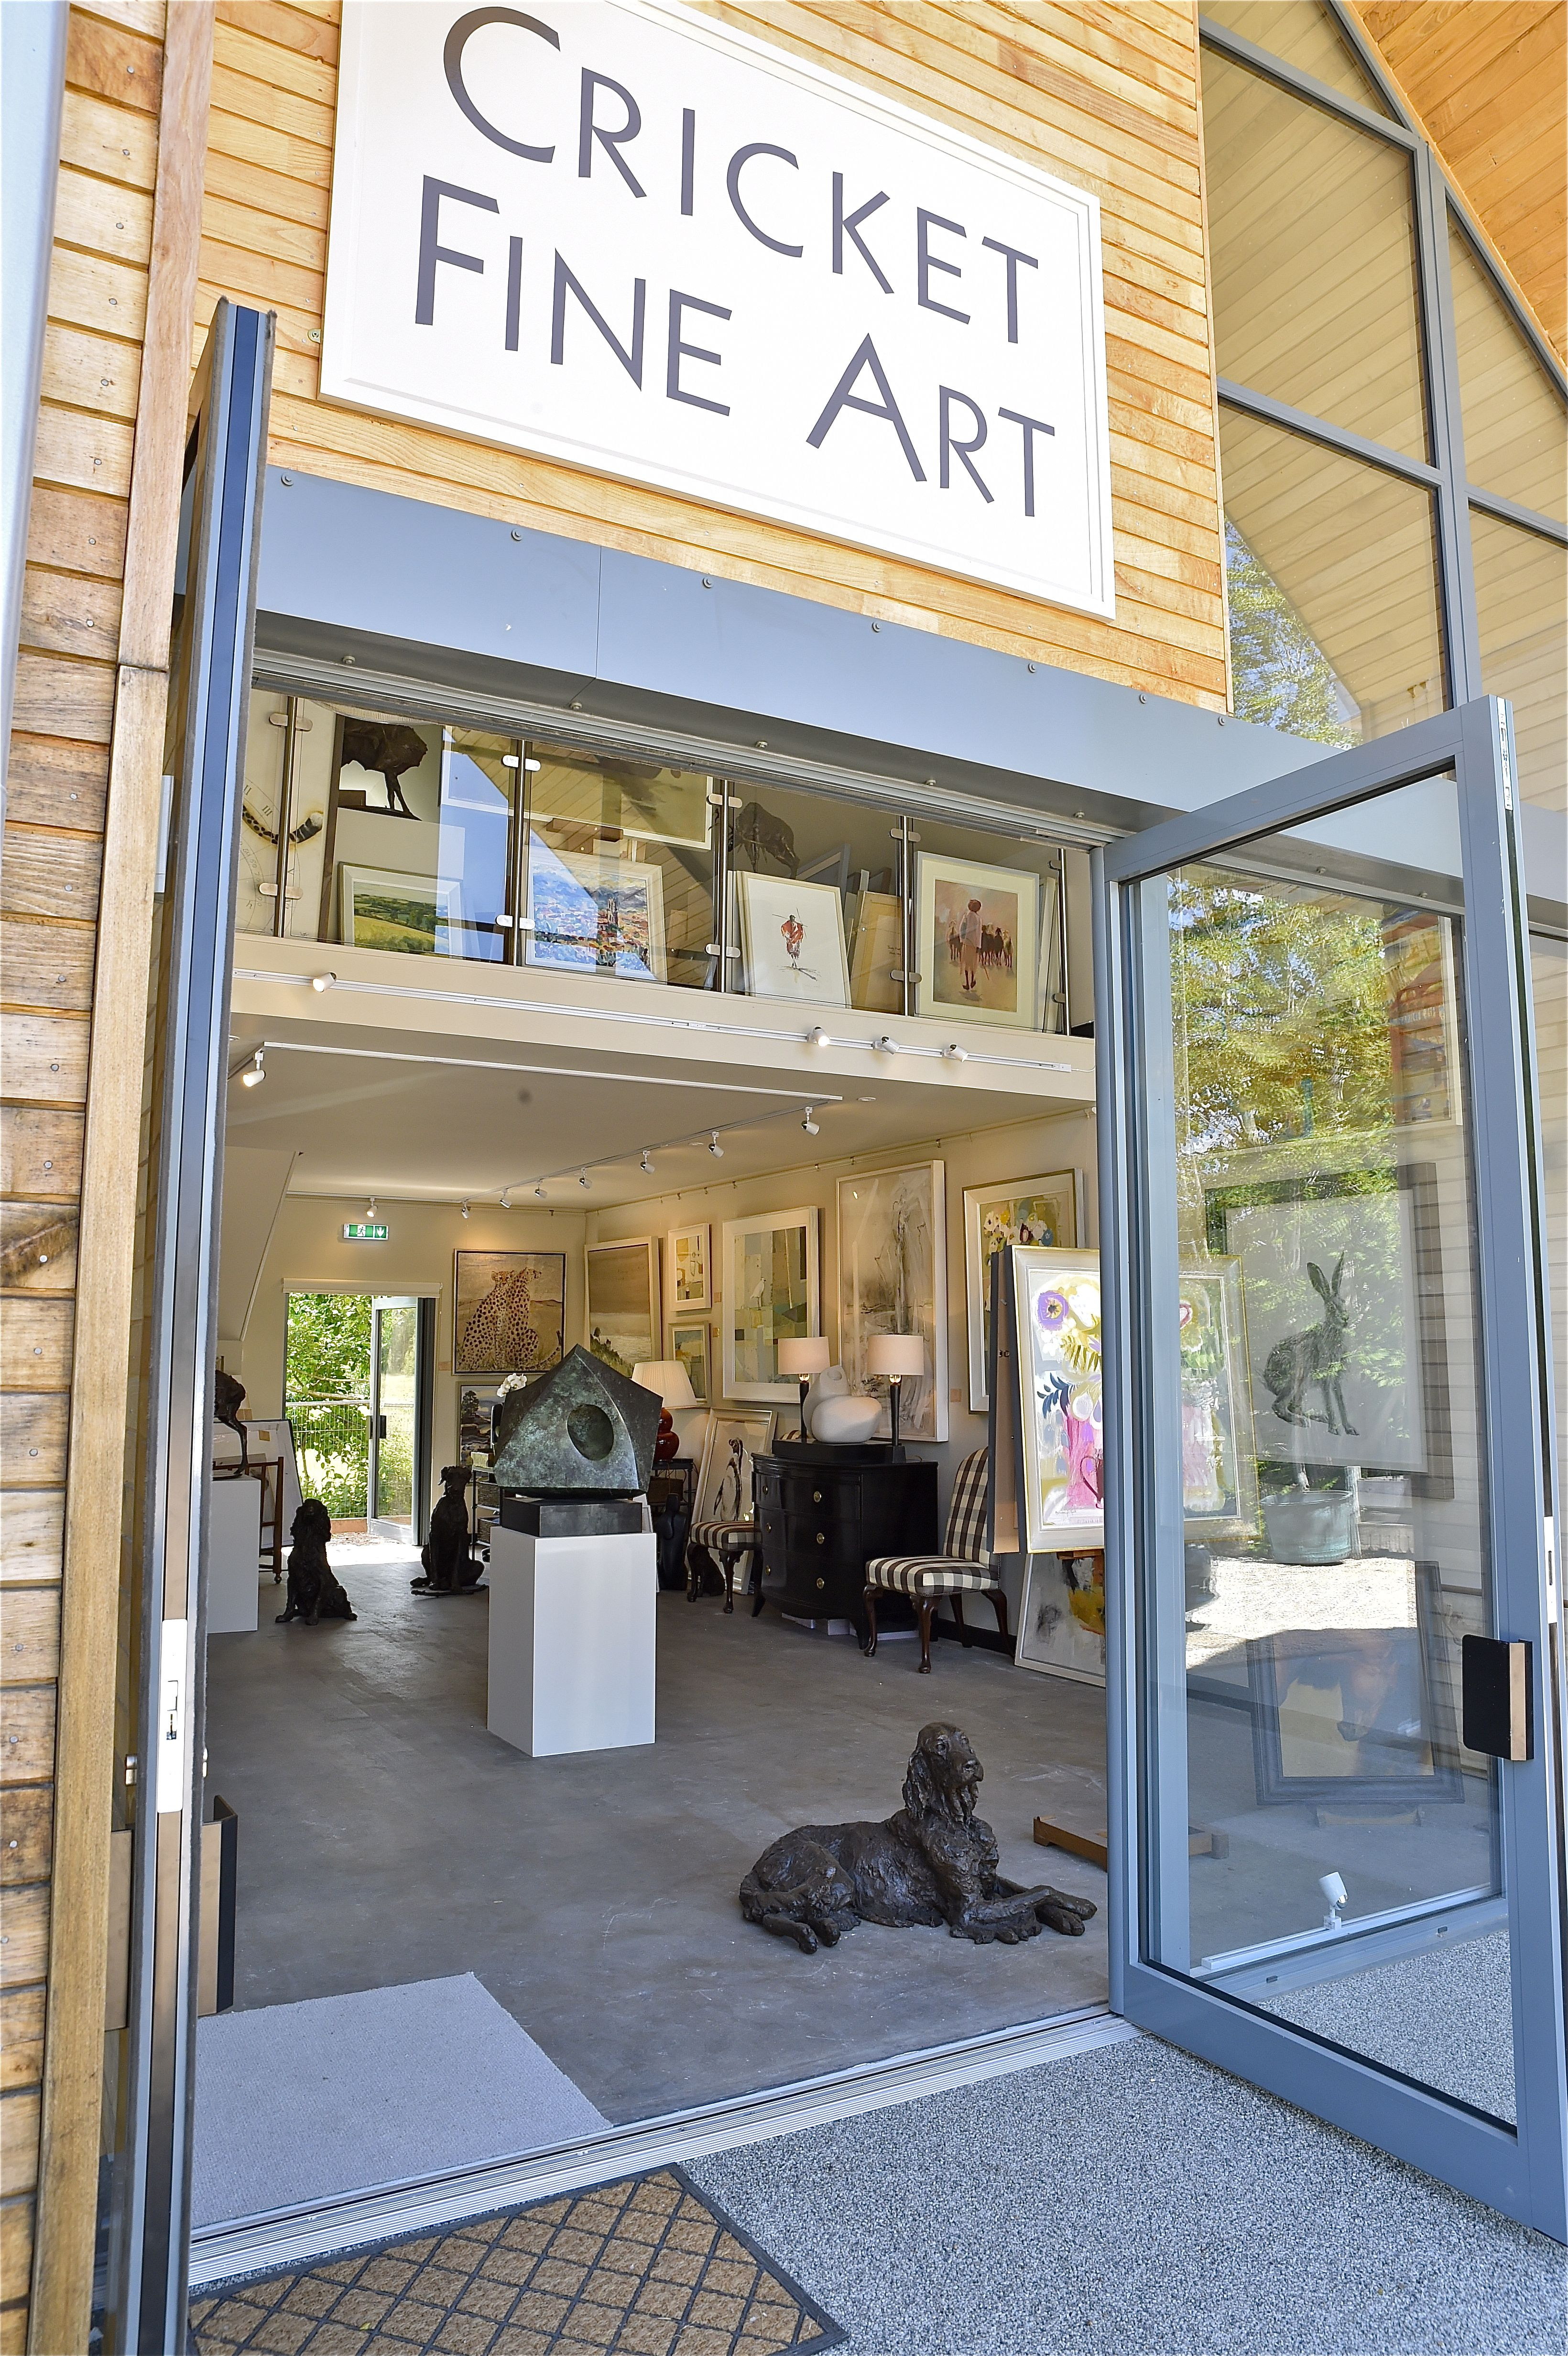 We are delighted to open our second gallery at Barr's Yard in Hungerford. Specializing in a range of contemporary and fine art paintings and sculptures, Cricket Fine Art offer a warm welcome to all! For directions click on the image and visit the site.